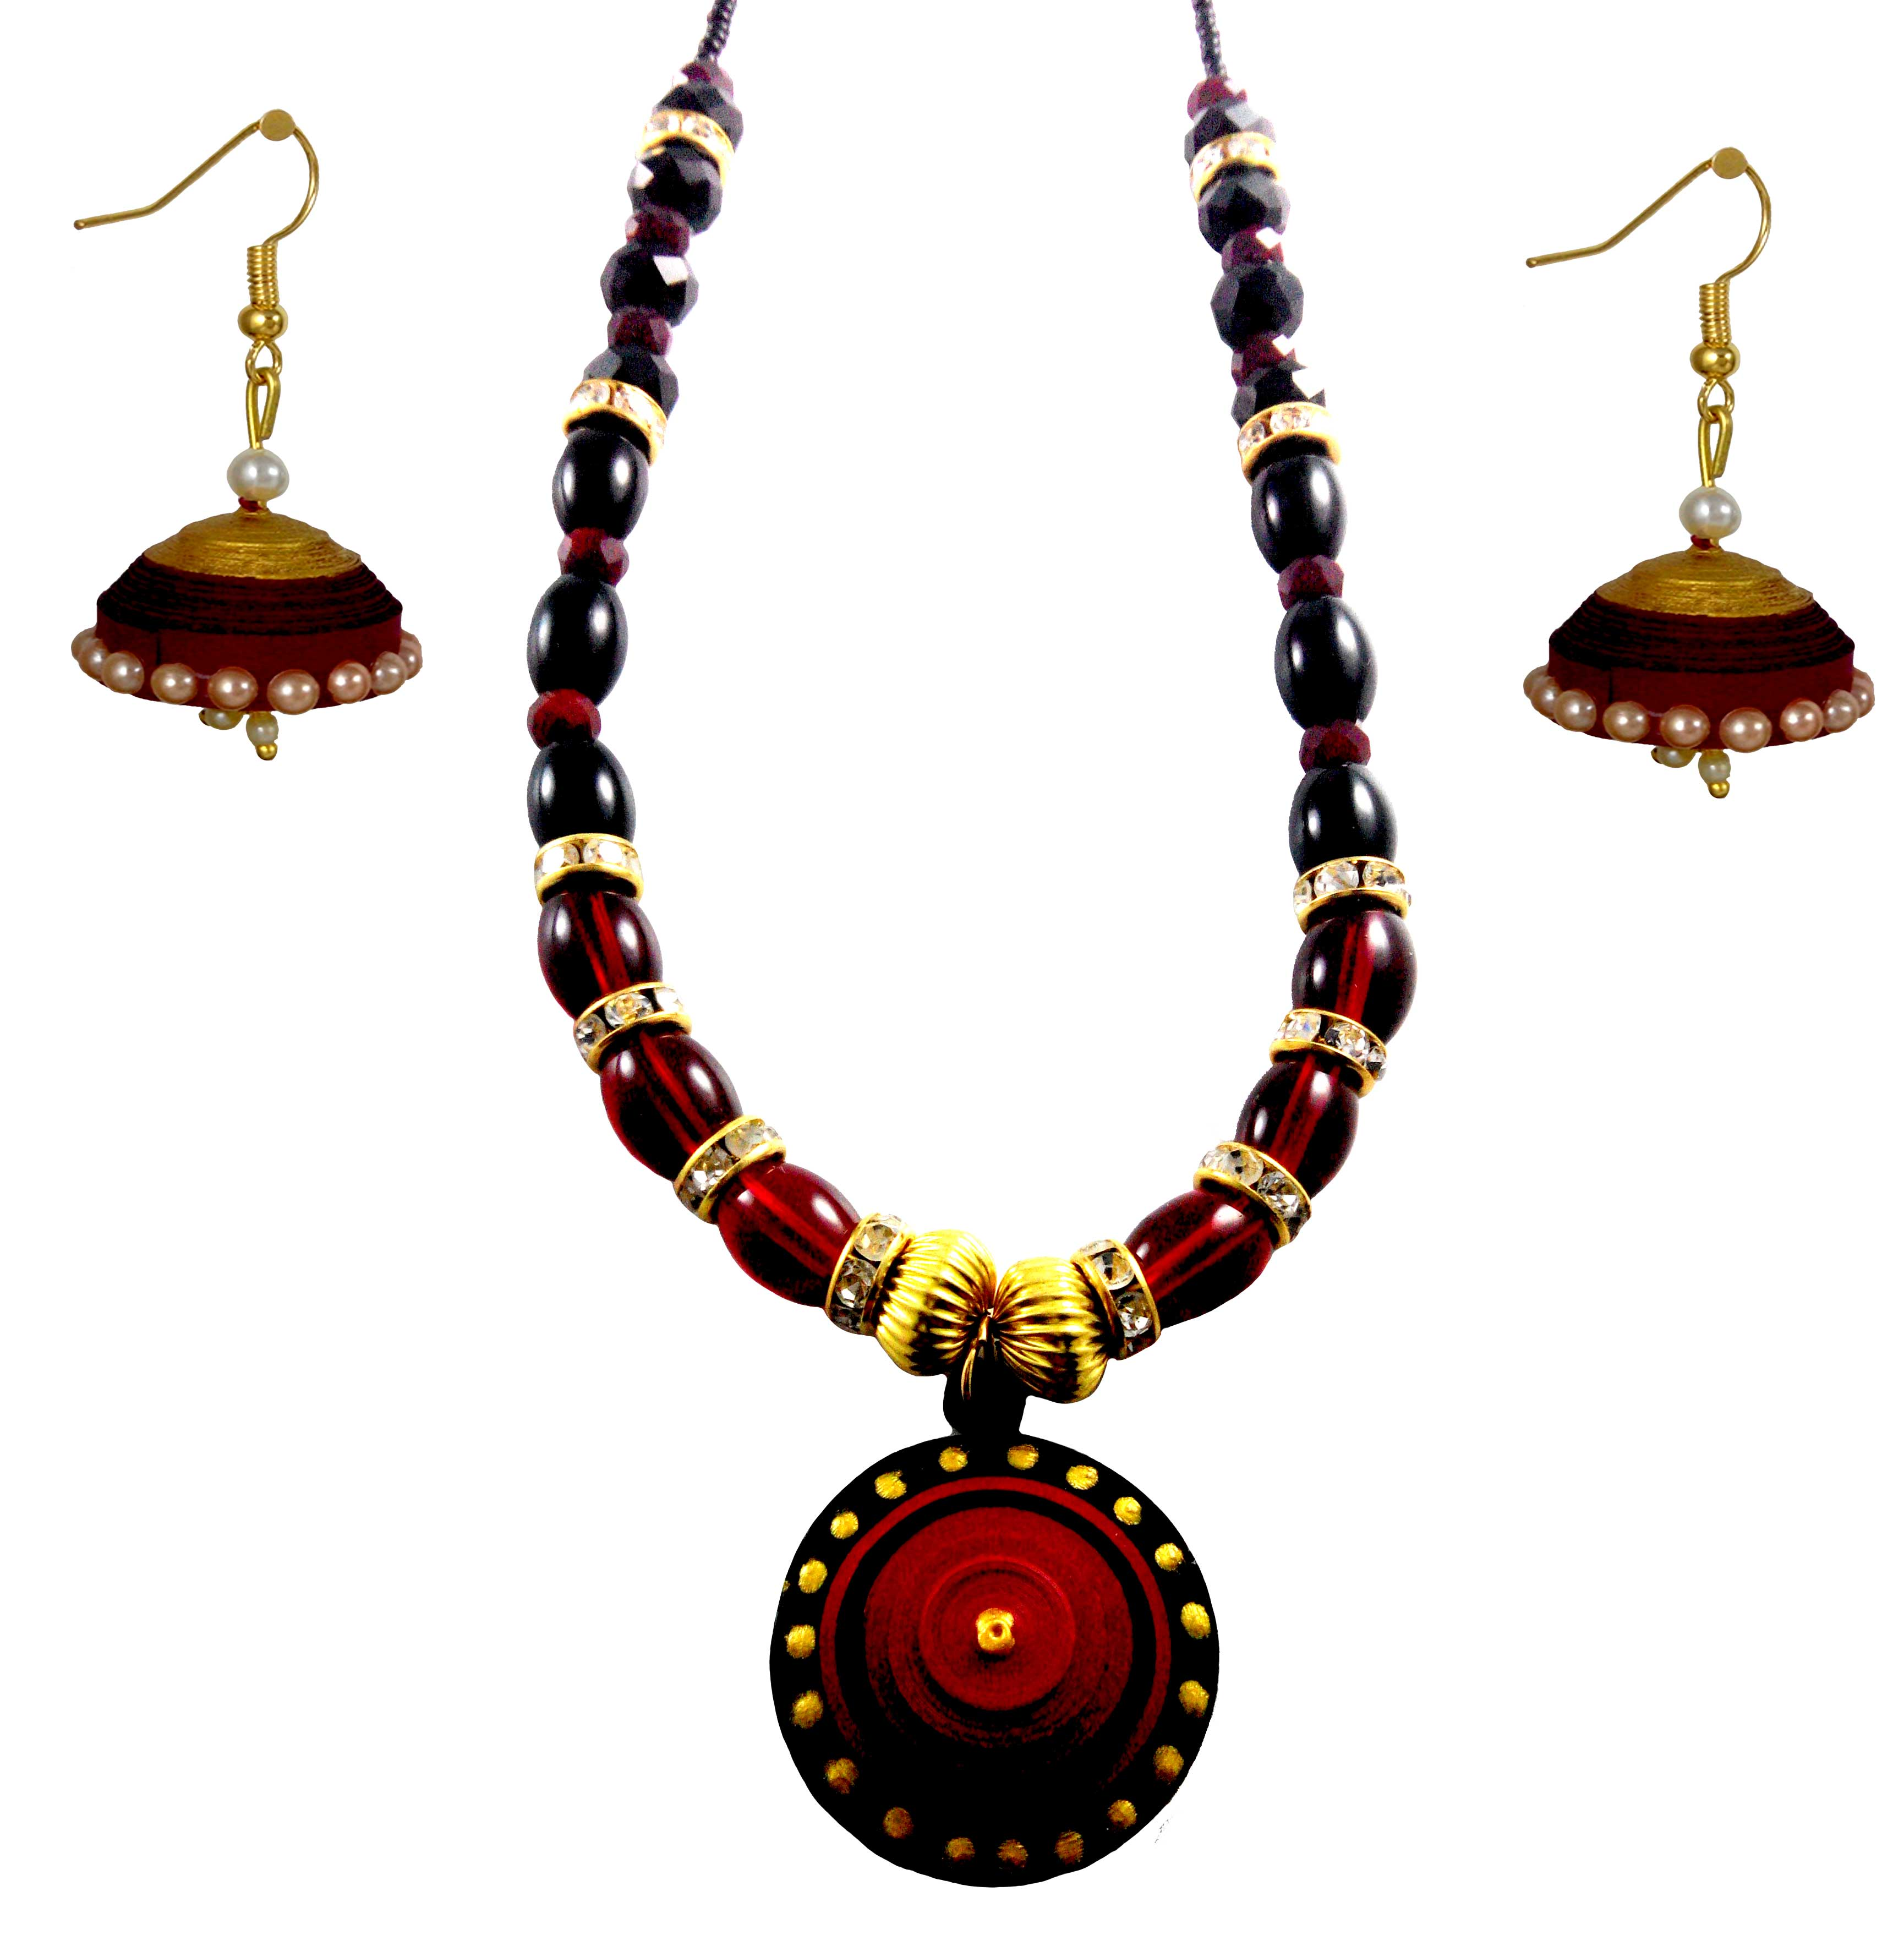 Buy Handmade Paper Jewellery and Quilling Necklace Set Online